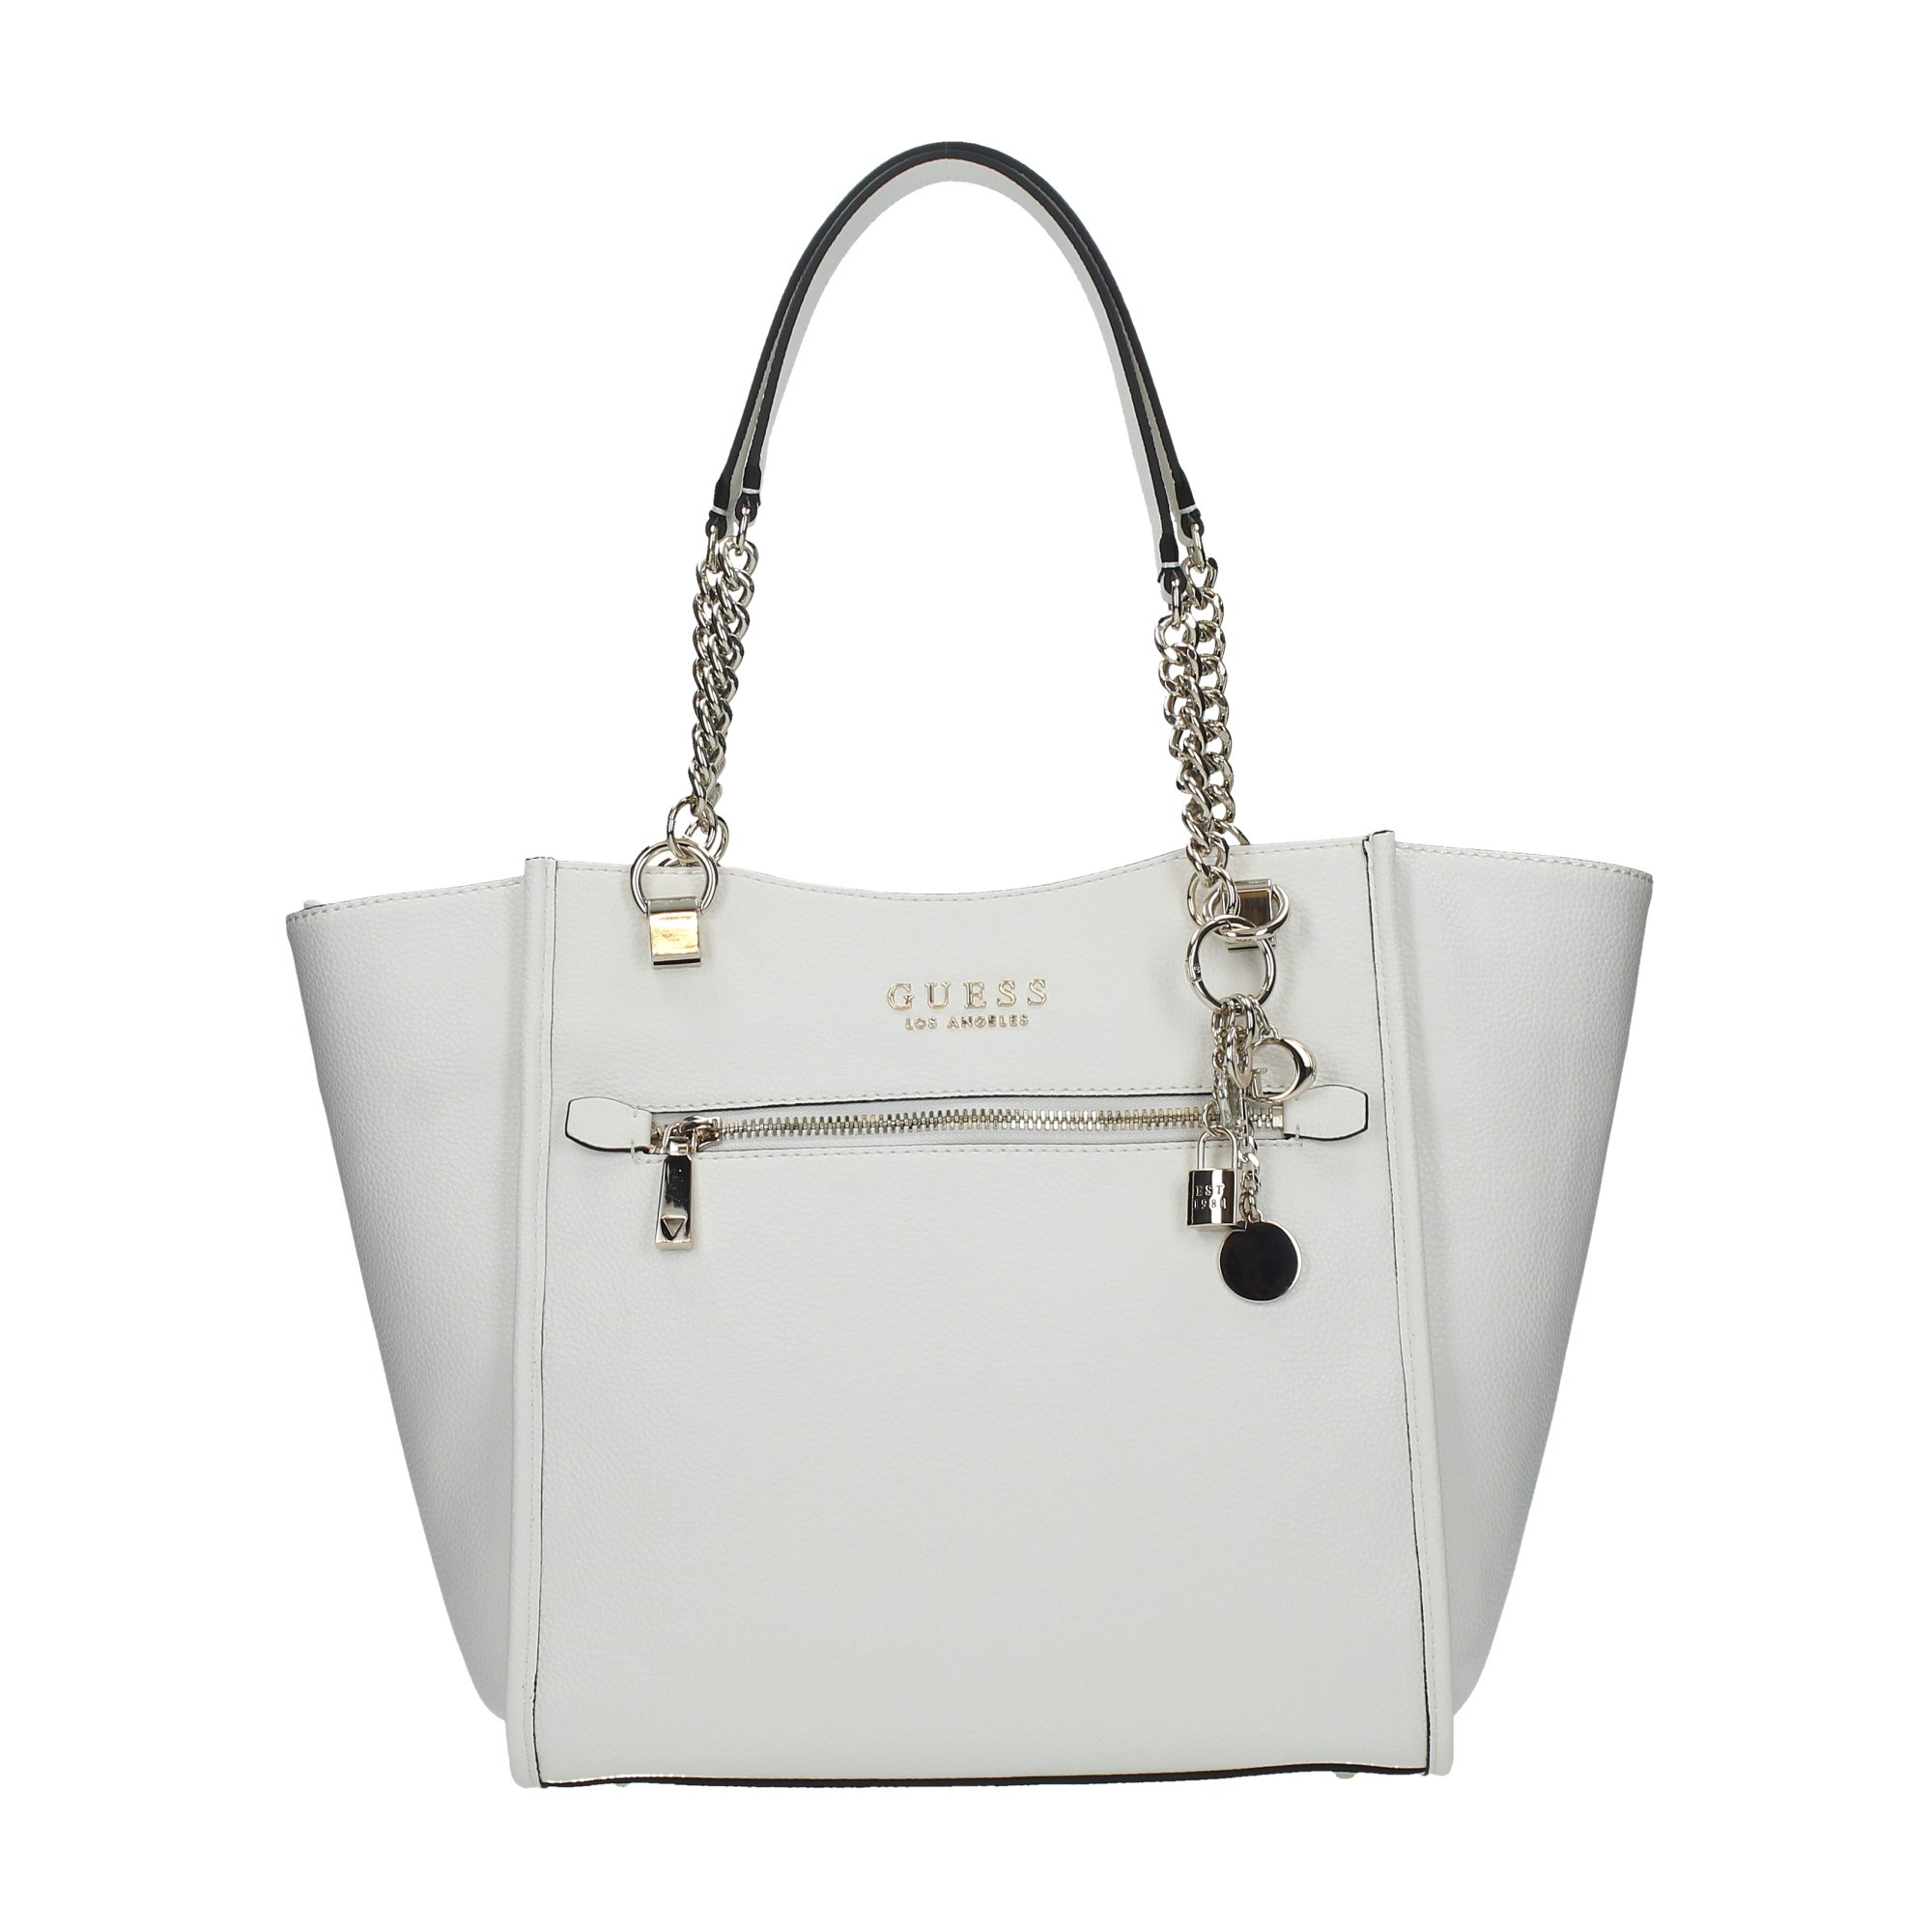 Guess Borse Accessories Women Shoulder Bags White HWVG76/70230